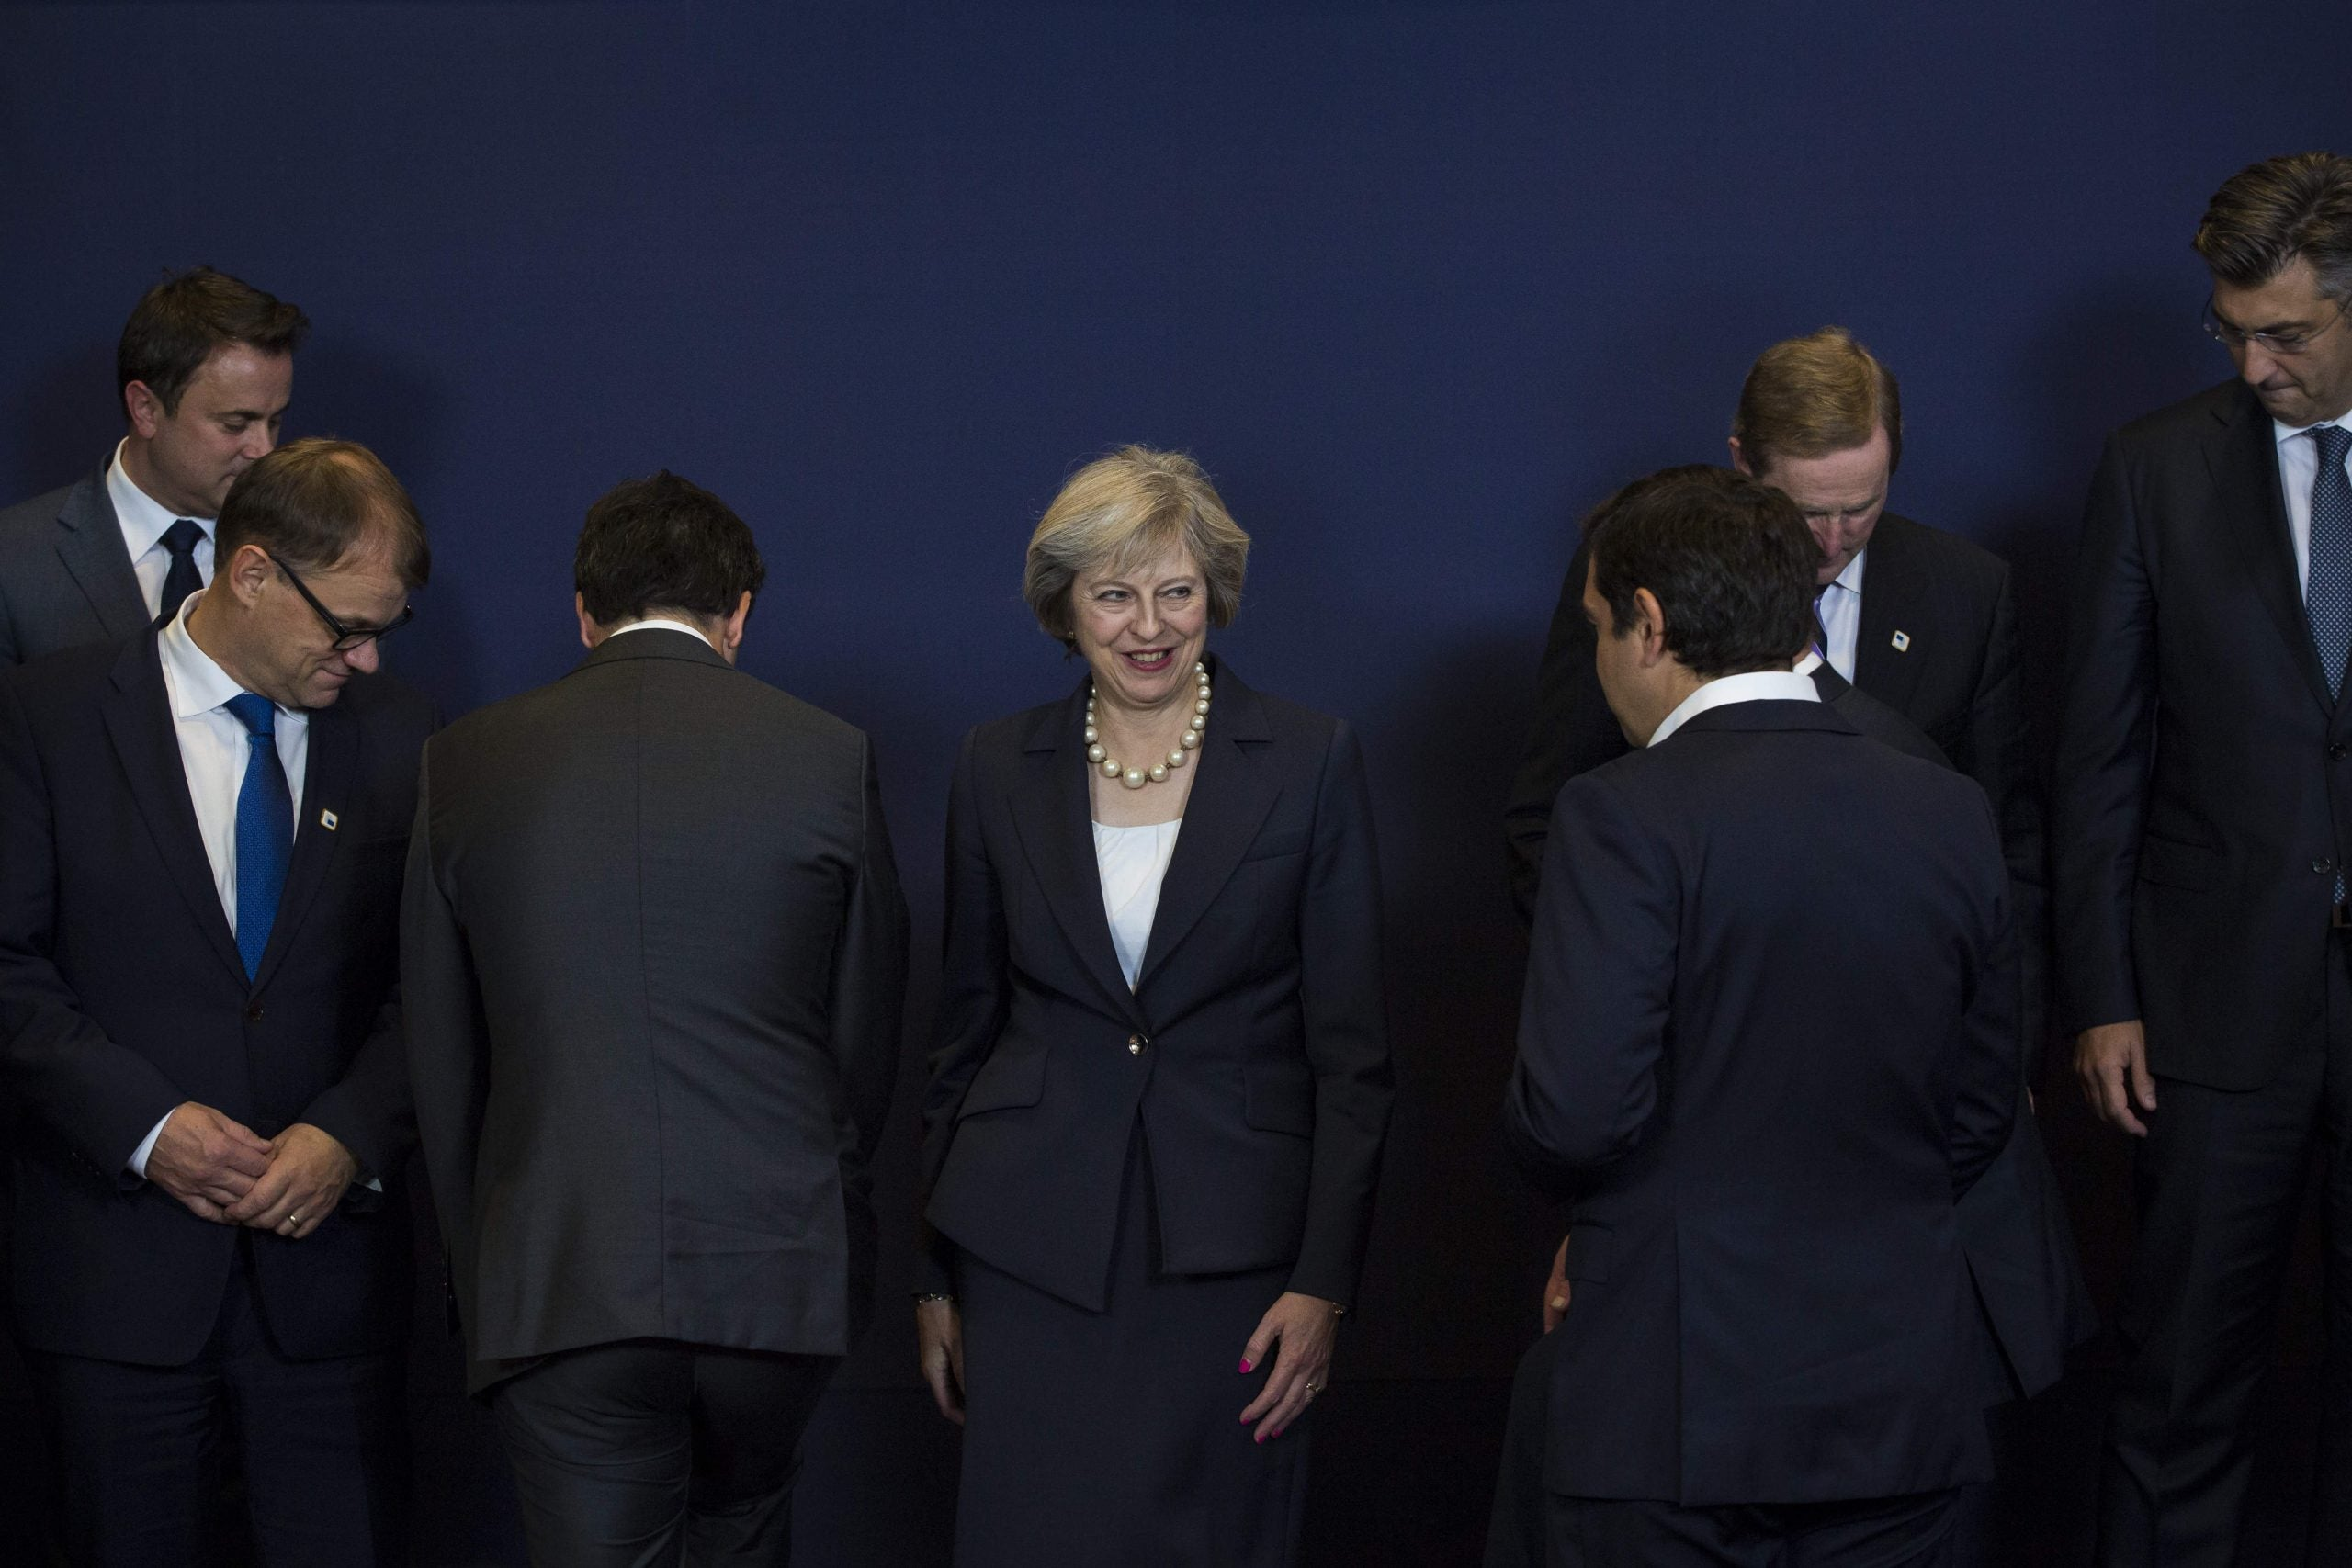 Theresa May can play big fish with devolved nations - in the EU she's already a nobody